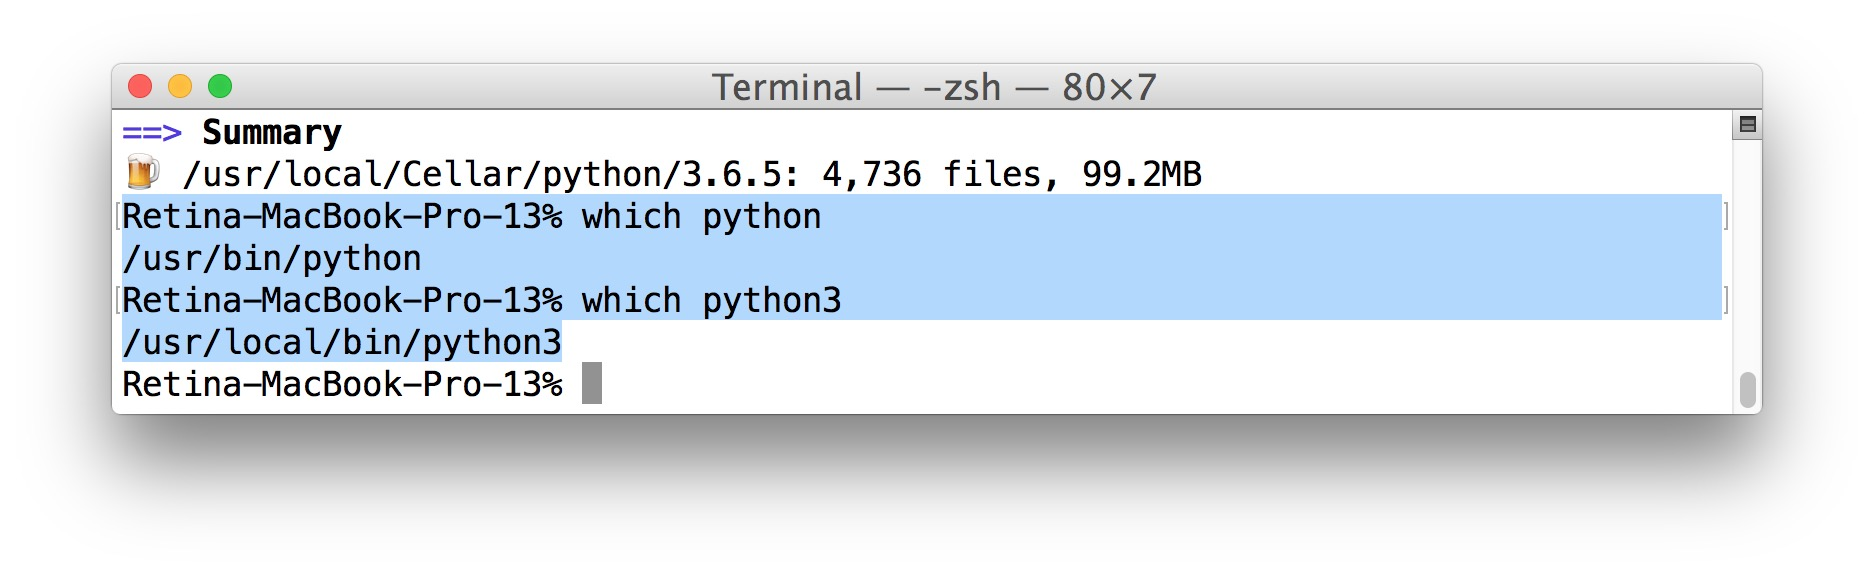 How To Install Updated Python 36x On Mac X 10 3 Way Switch Wiring Diagram Which Installed Where